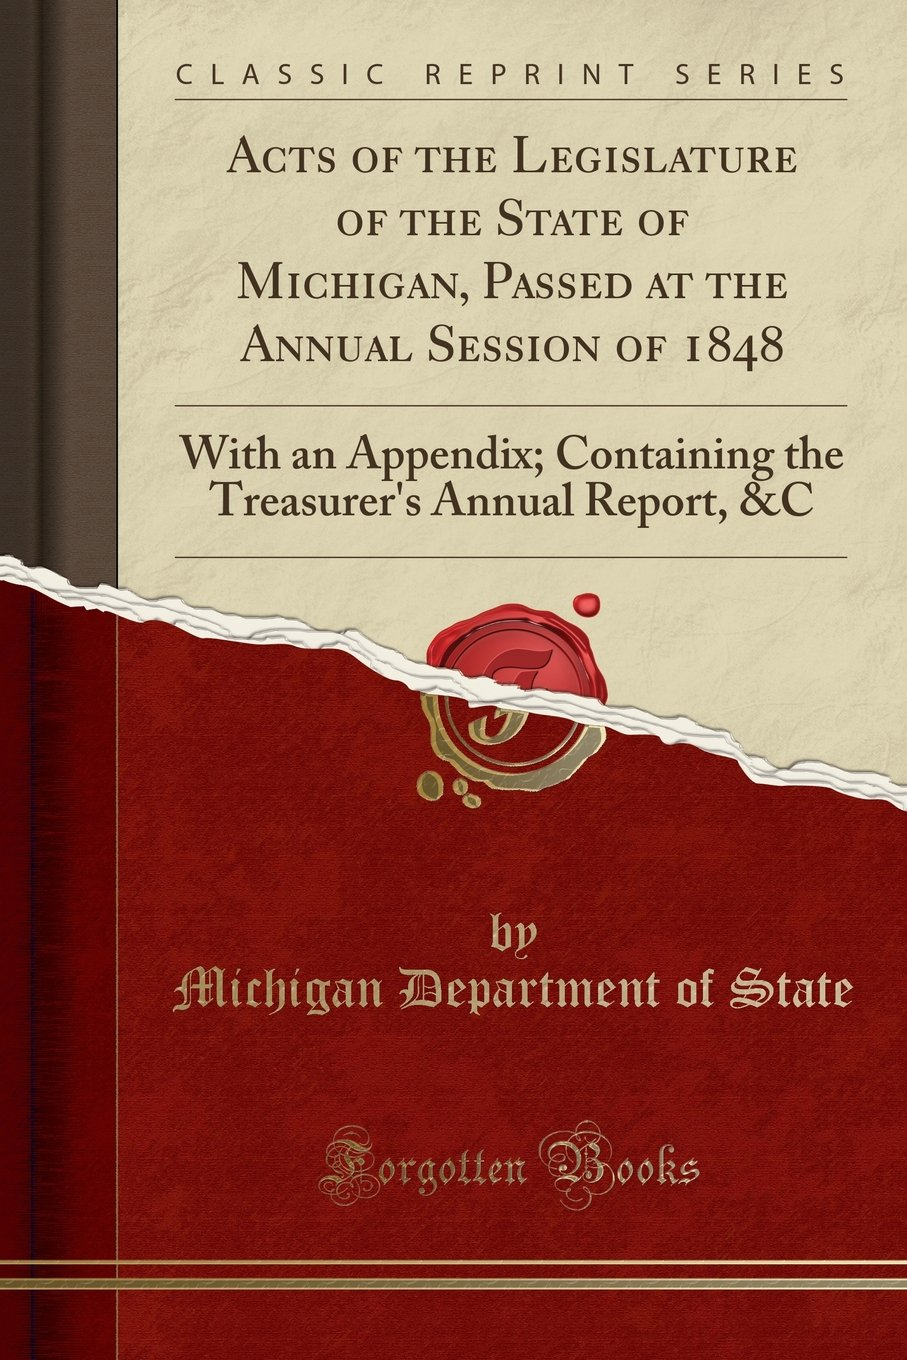 Acts of the Legislature of the State of Michigan, Passed at the Annual Session of 1848: With an Appendix; Containing the Treasurer's Annual Report, &C (Classic Reprint) pdf